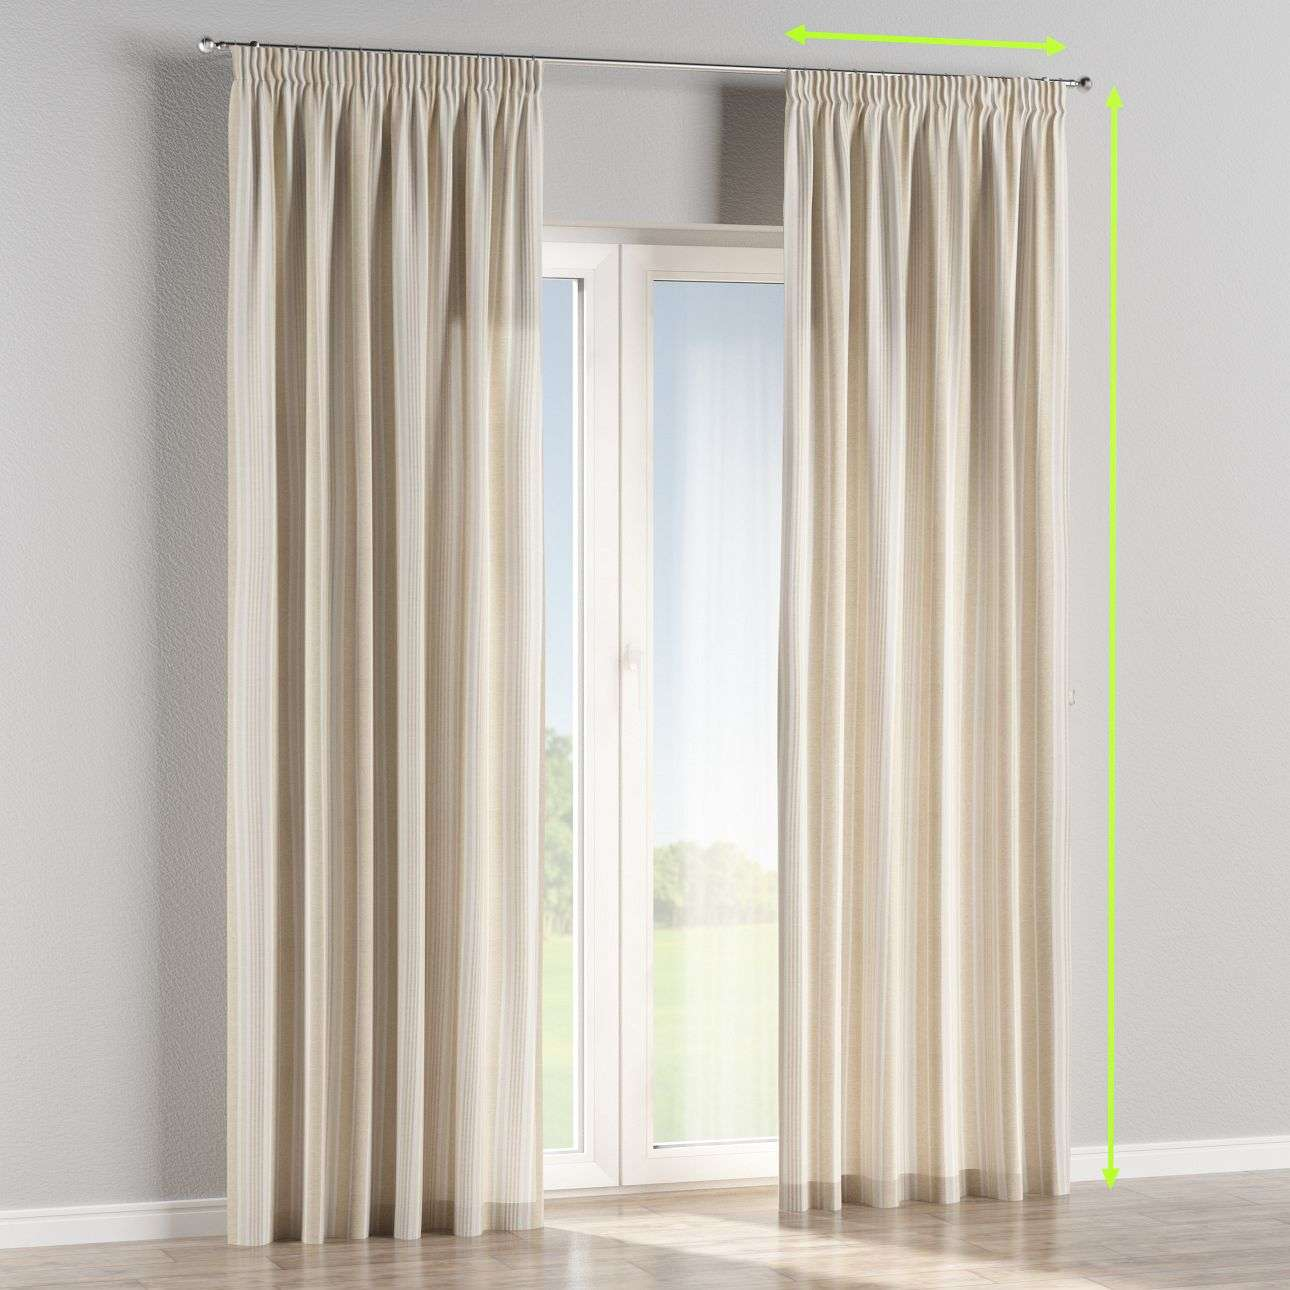 Pencil pleat curtains in collection Rustica, fabric: 138-24